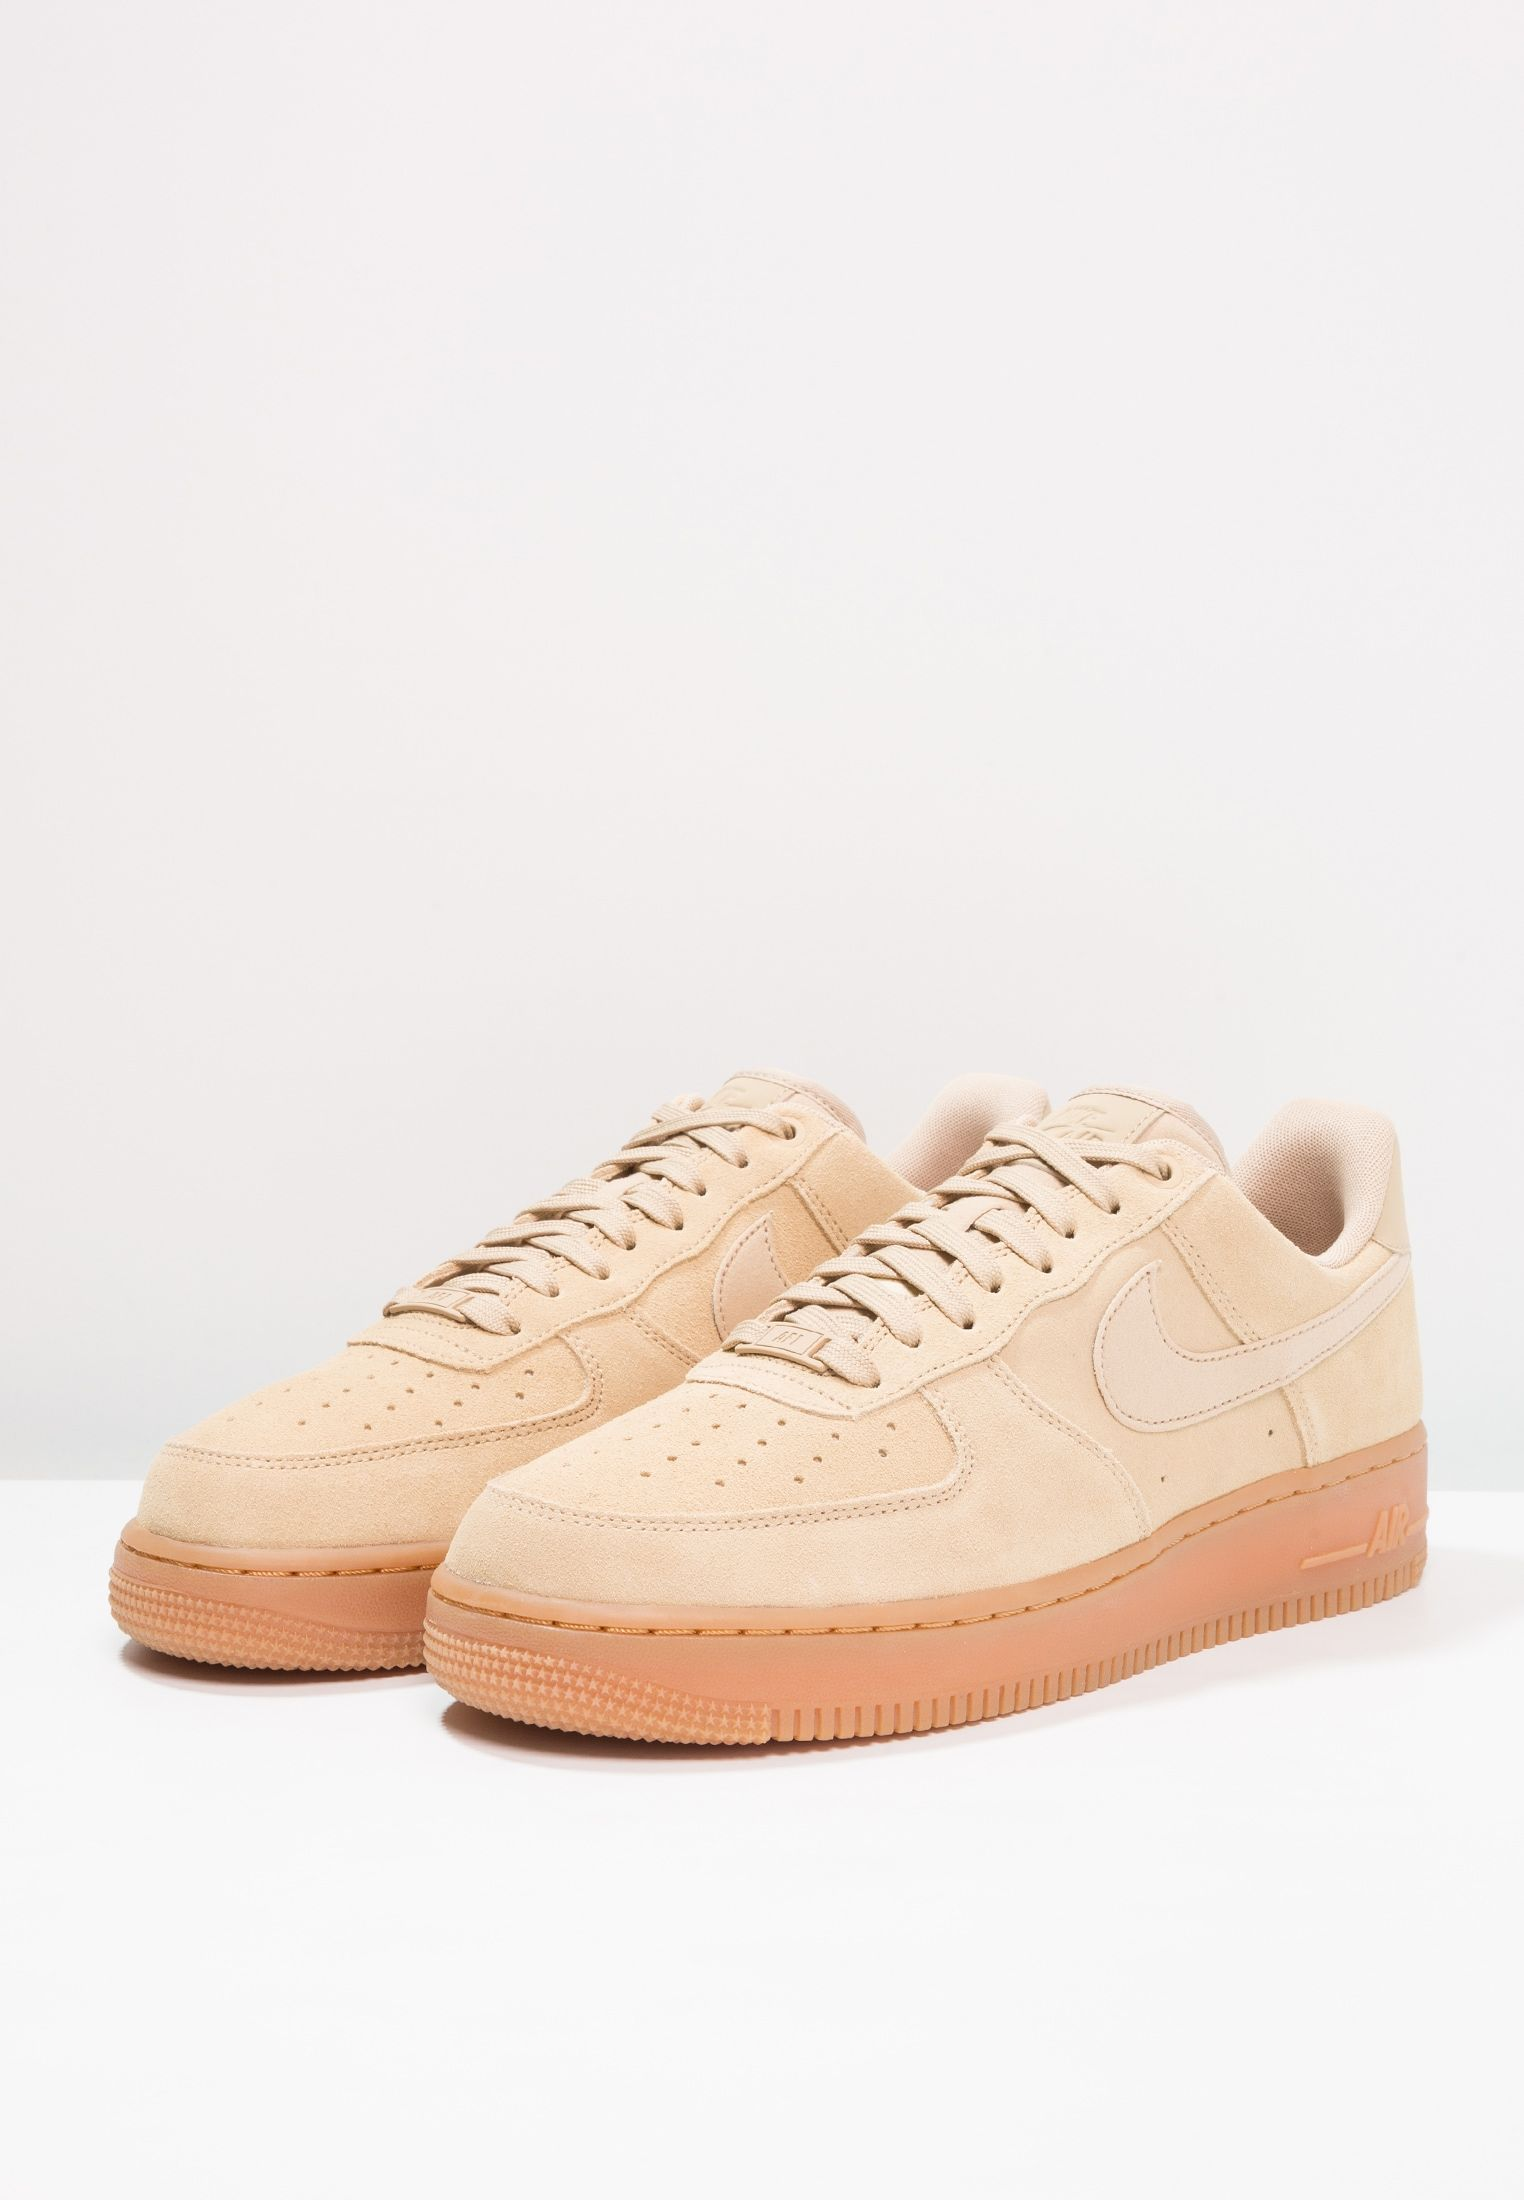 AIR FORCE 1 07 LV8 SUEDE Sneakers mushroommedium brown